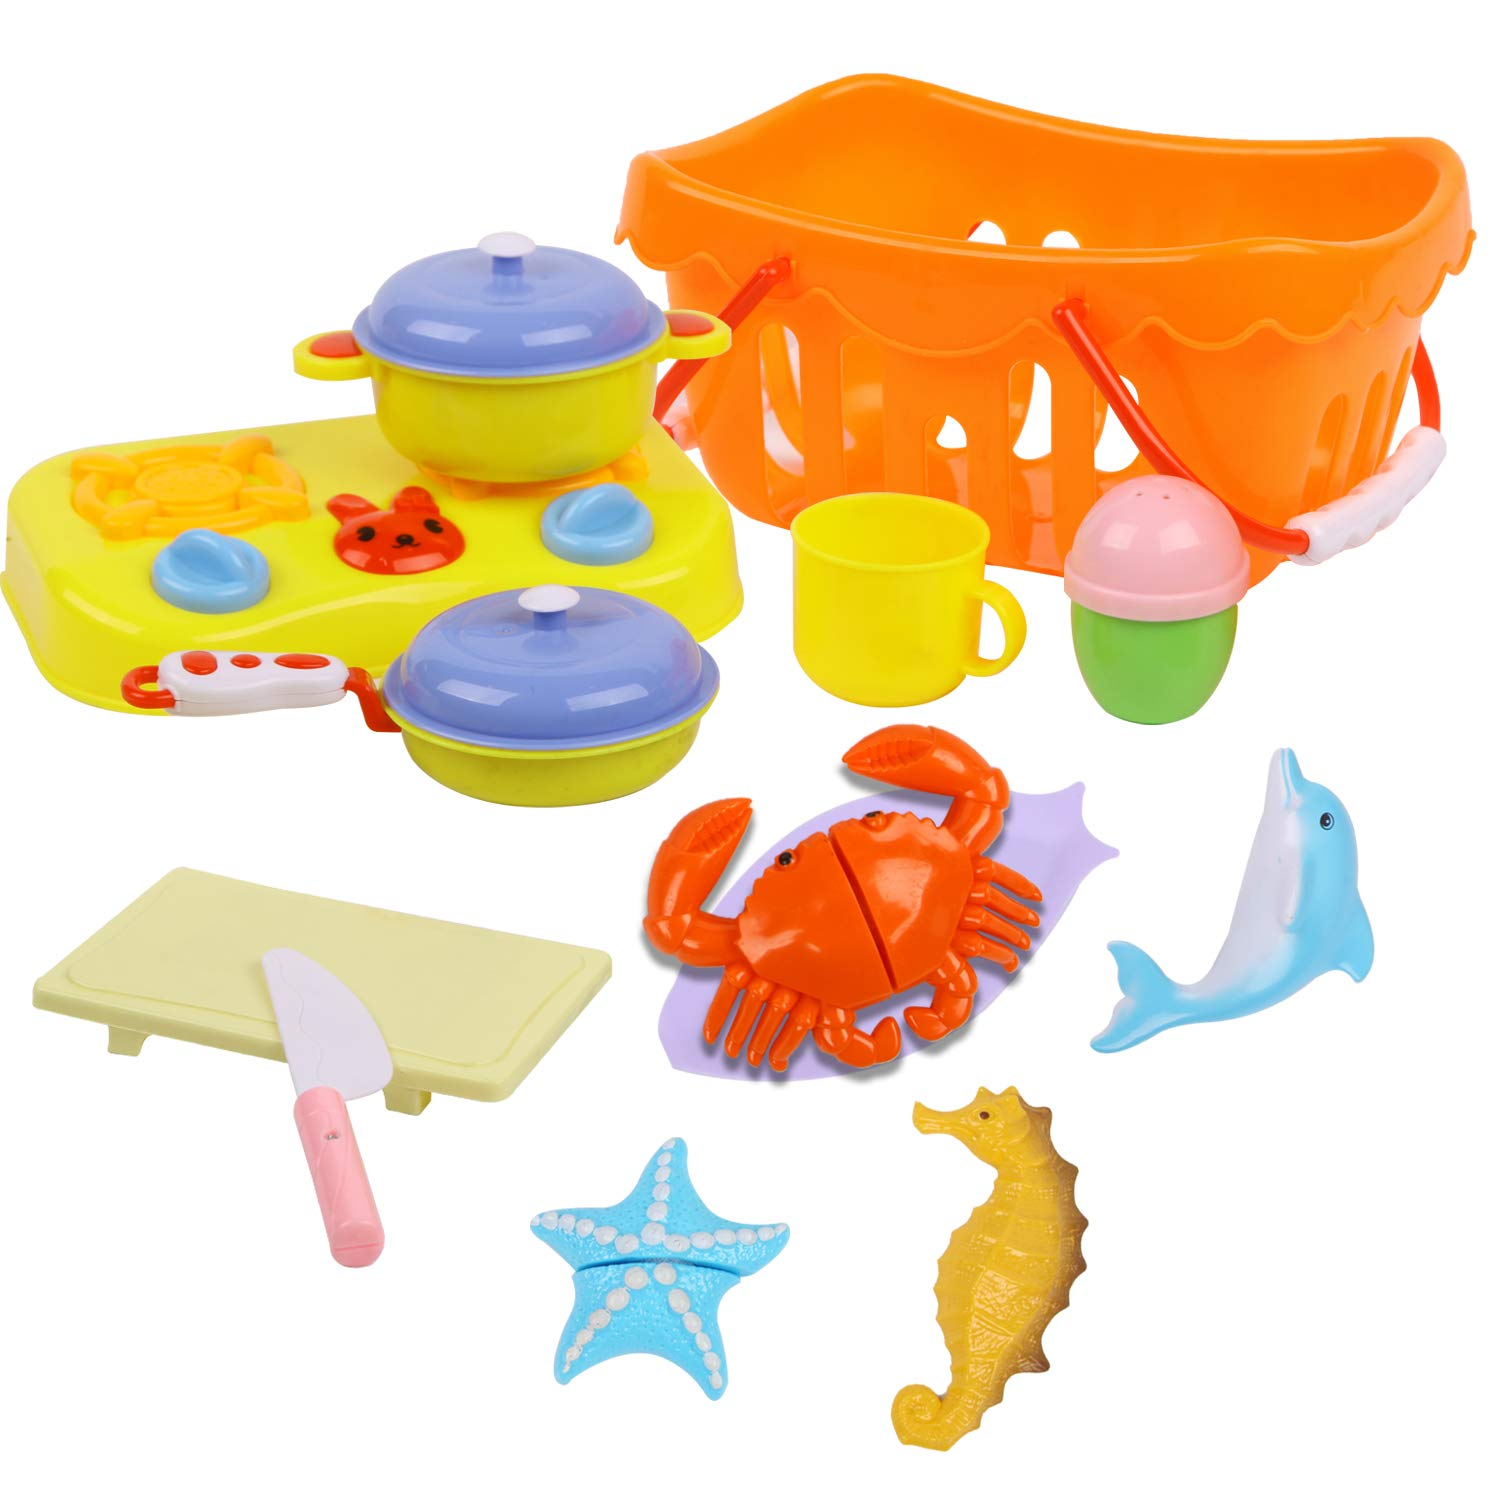 ToyerBee Kids Play Food & Pretend Play Cutting Kitchen Toys-Outdoor Sand Toys with Basket-Educational Preschool Toy Assortment-seaCreatureToys-Birthday Gift for Girls and Boys